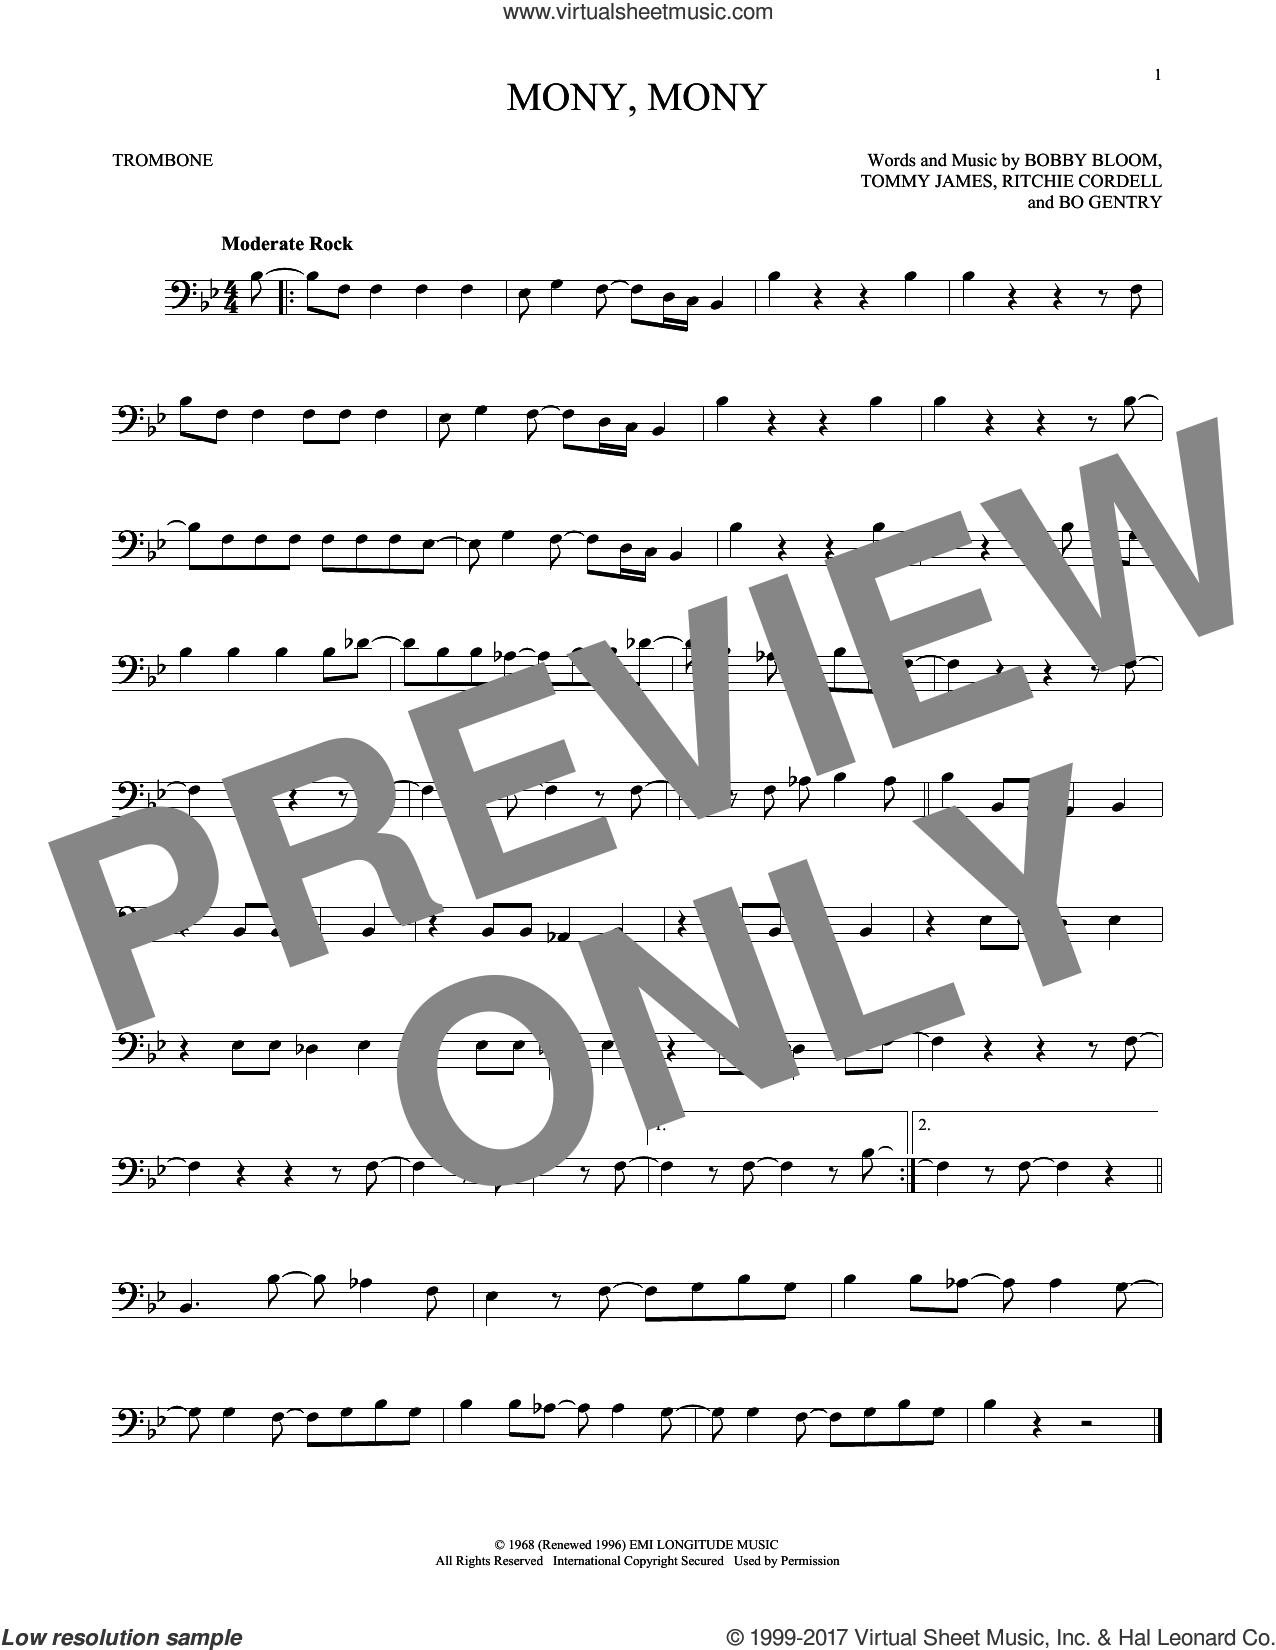 Mony, Mony sheet music for trombone solo by Tommy James & The Shondells, Bobby Bloom and Ritchie Cordell, intermediate trombone. Score Image Preview.